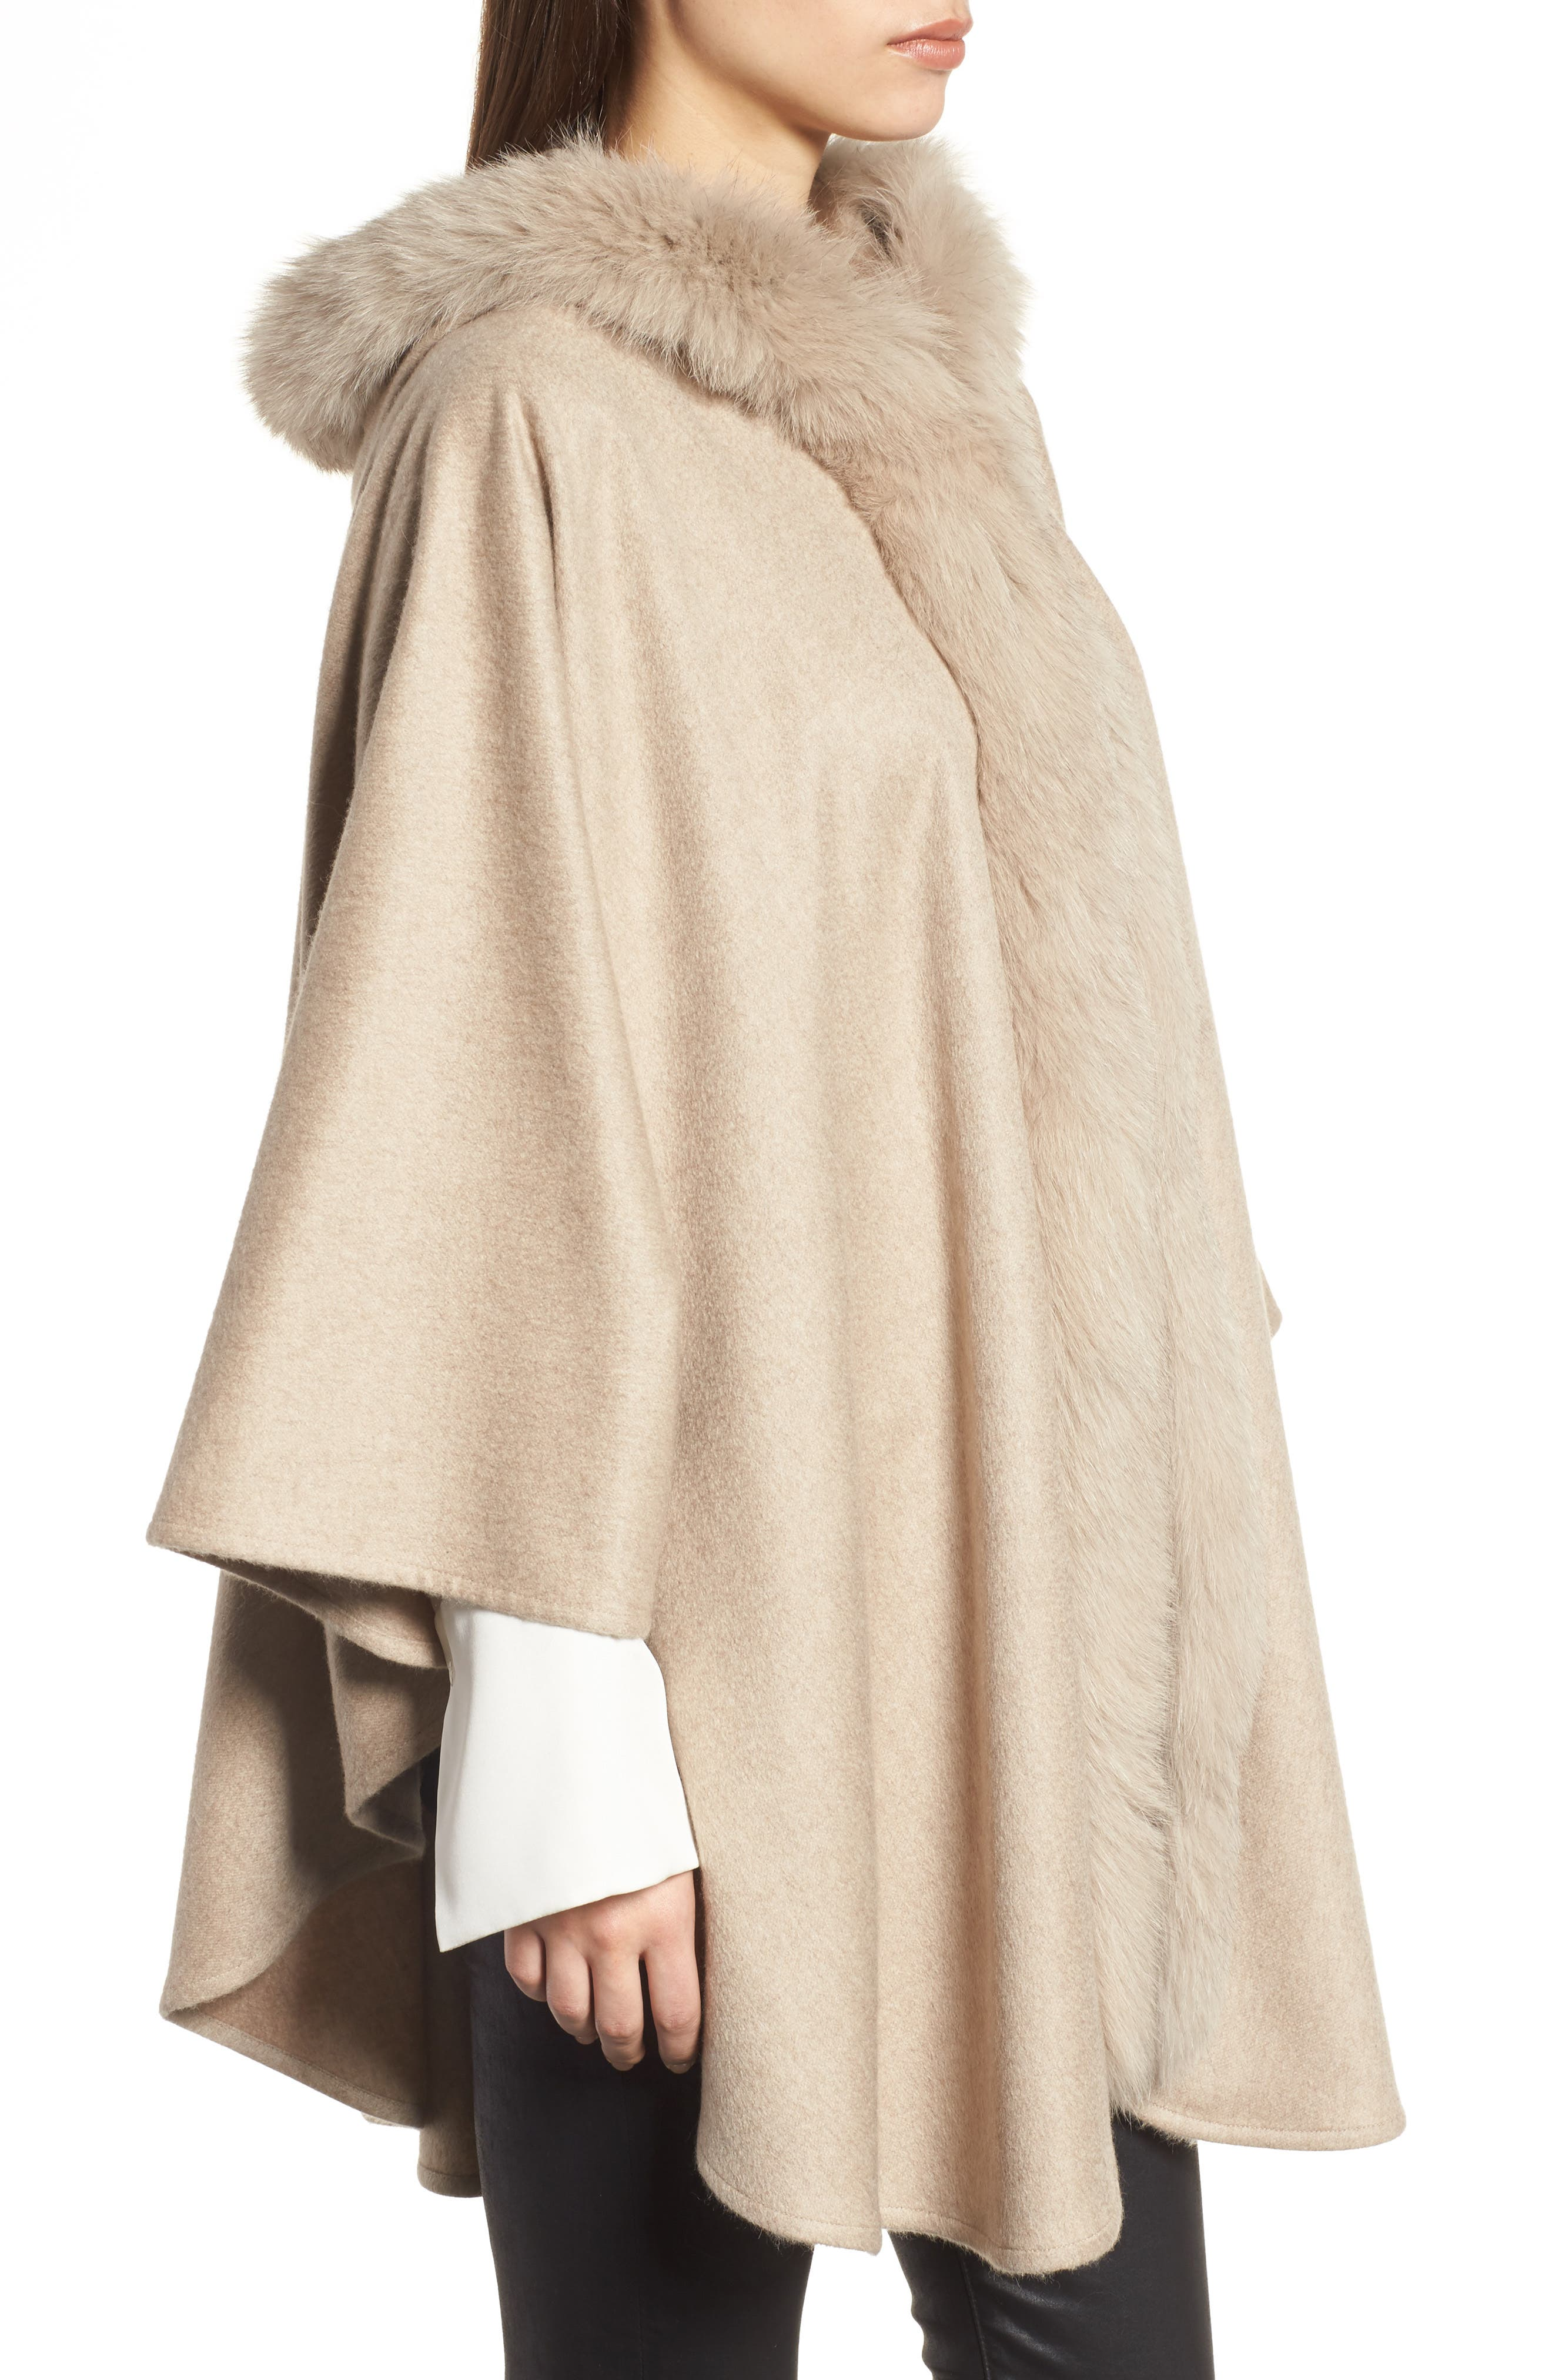 Cashmere Hooded Cape with Genuine Fox Fur Trim,                             Alternate thumbnail 3, color,                             Beige